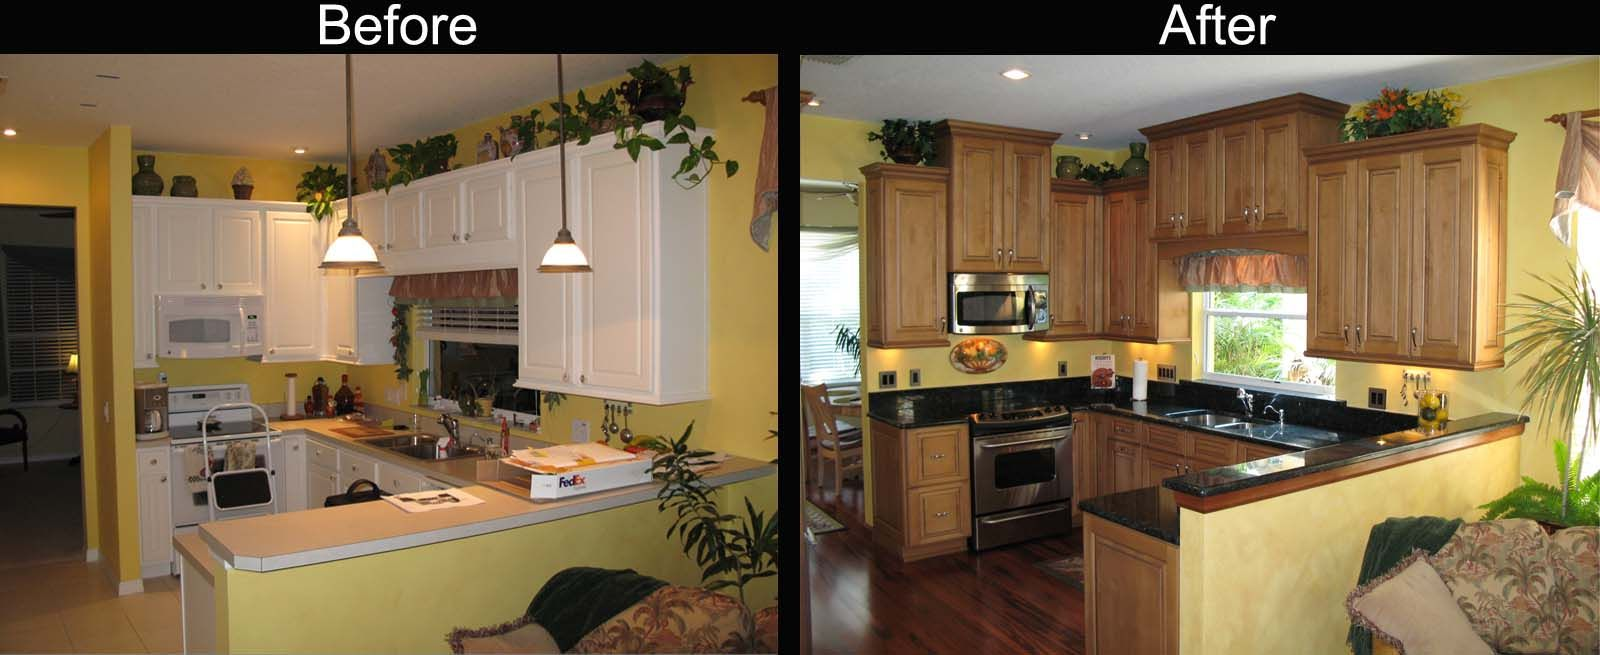 Renovation Ideas Before And After New Painted Cabinets Before And After Ideas For Your Kitchen Design Decoration